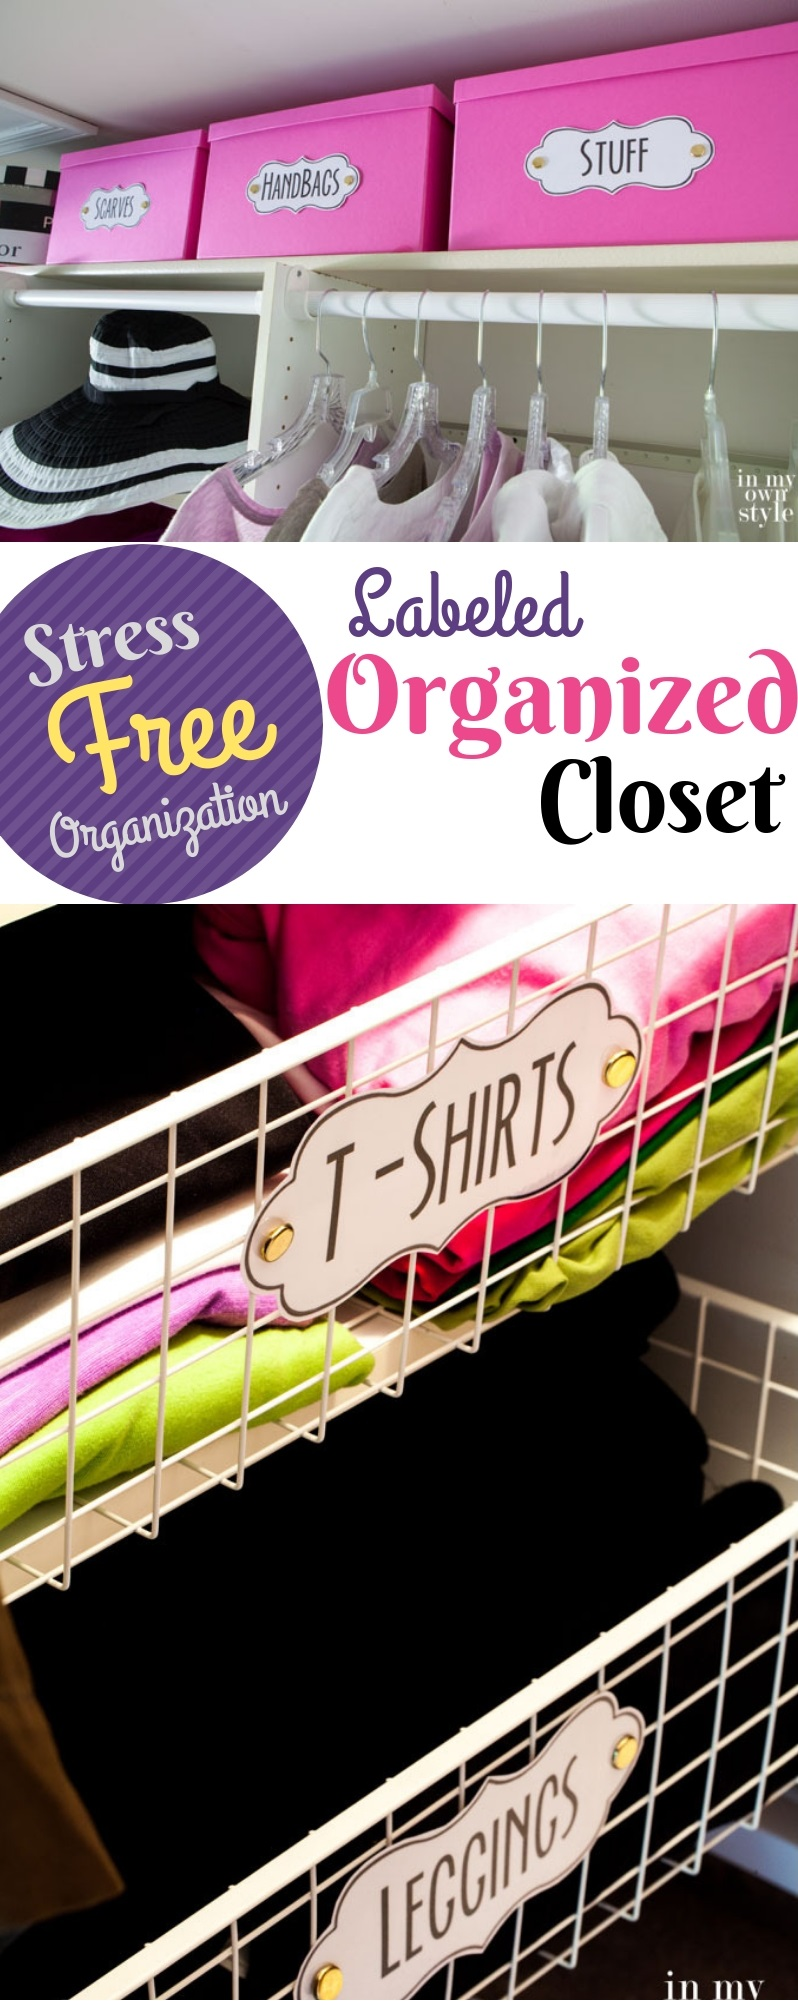 Labeled Organized Closet Storage Ideas: Stress-Free Crisp and Clear Labeled Closet